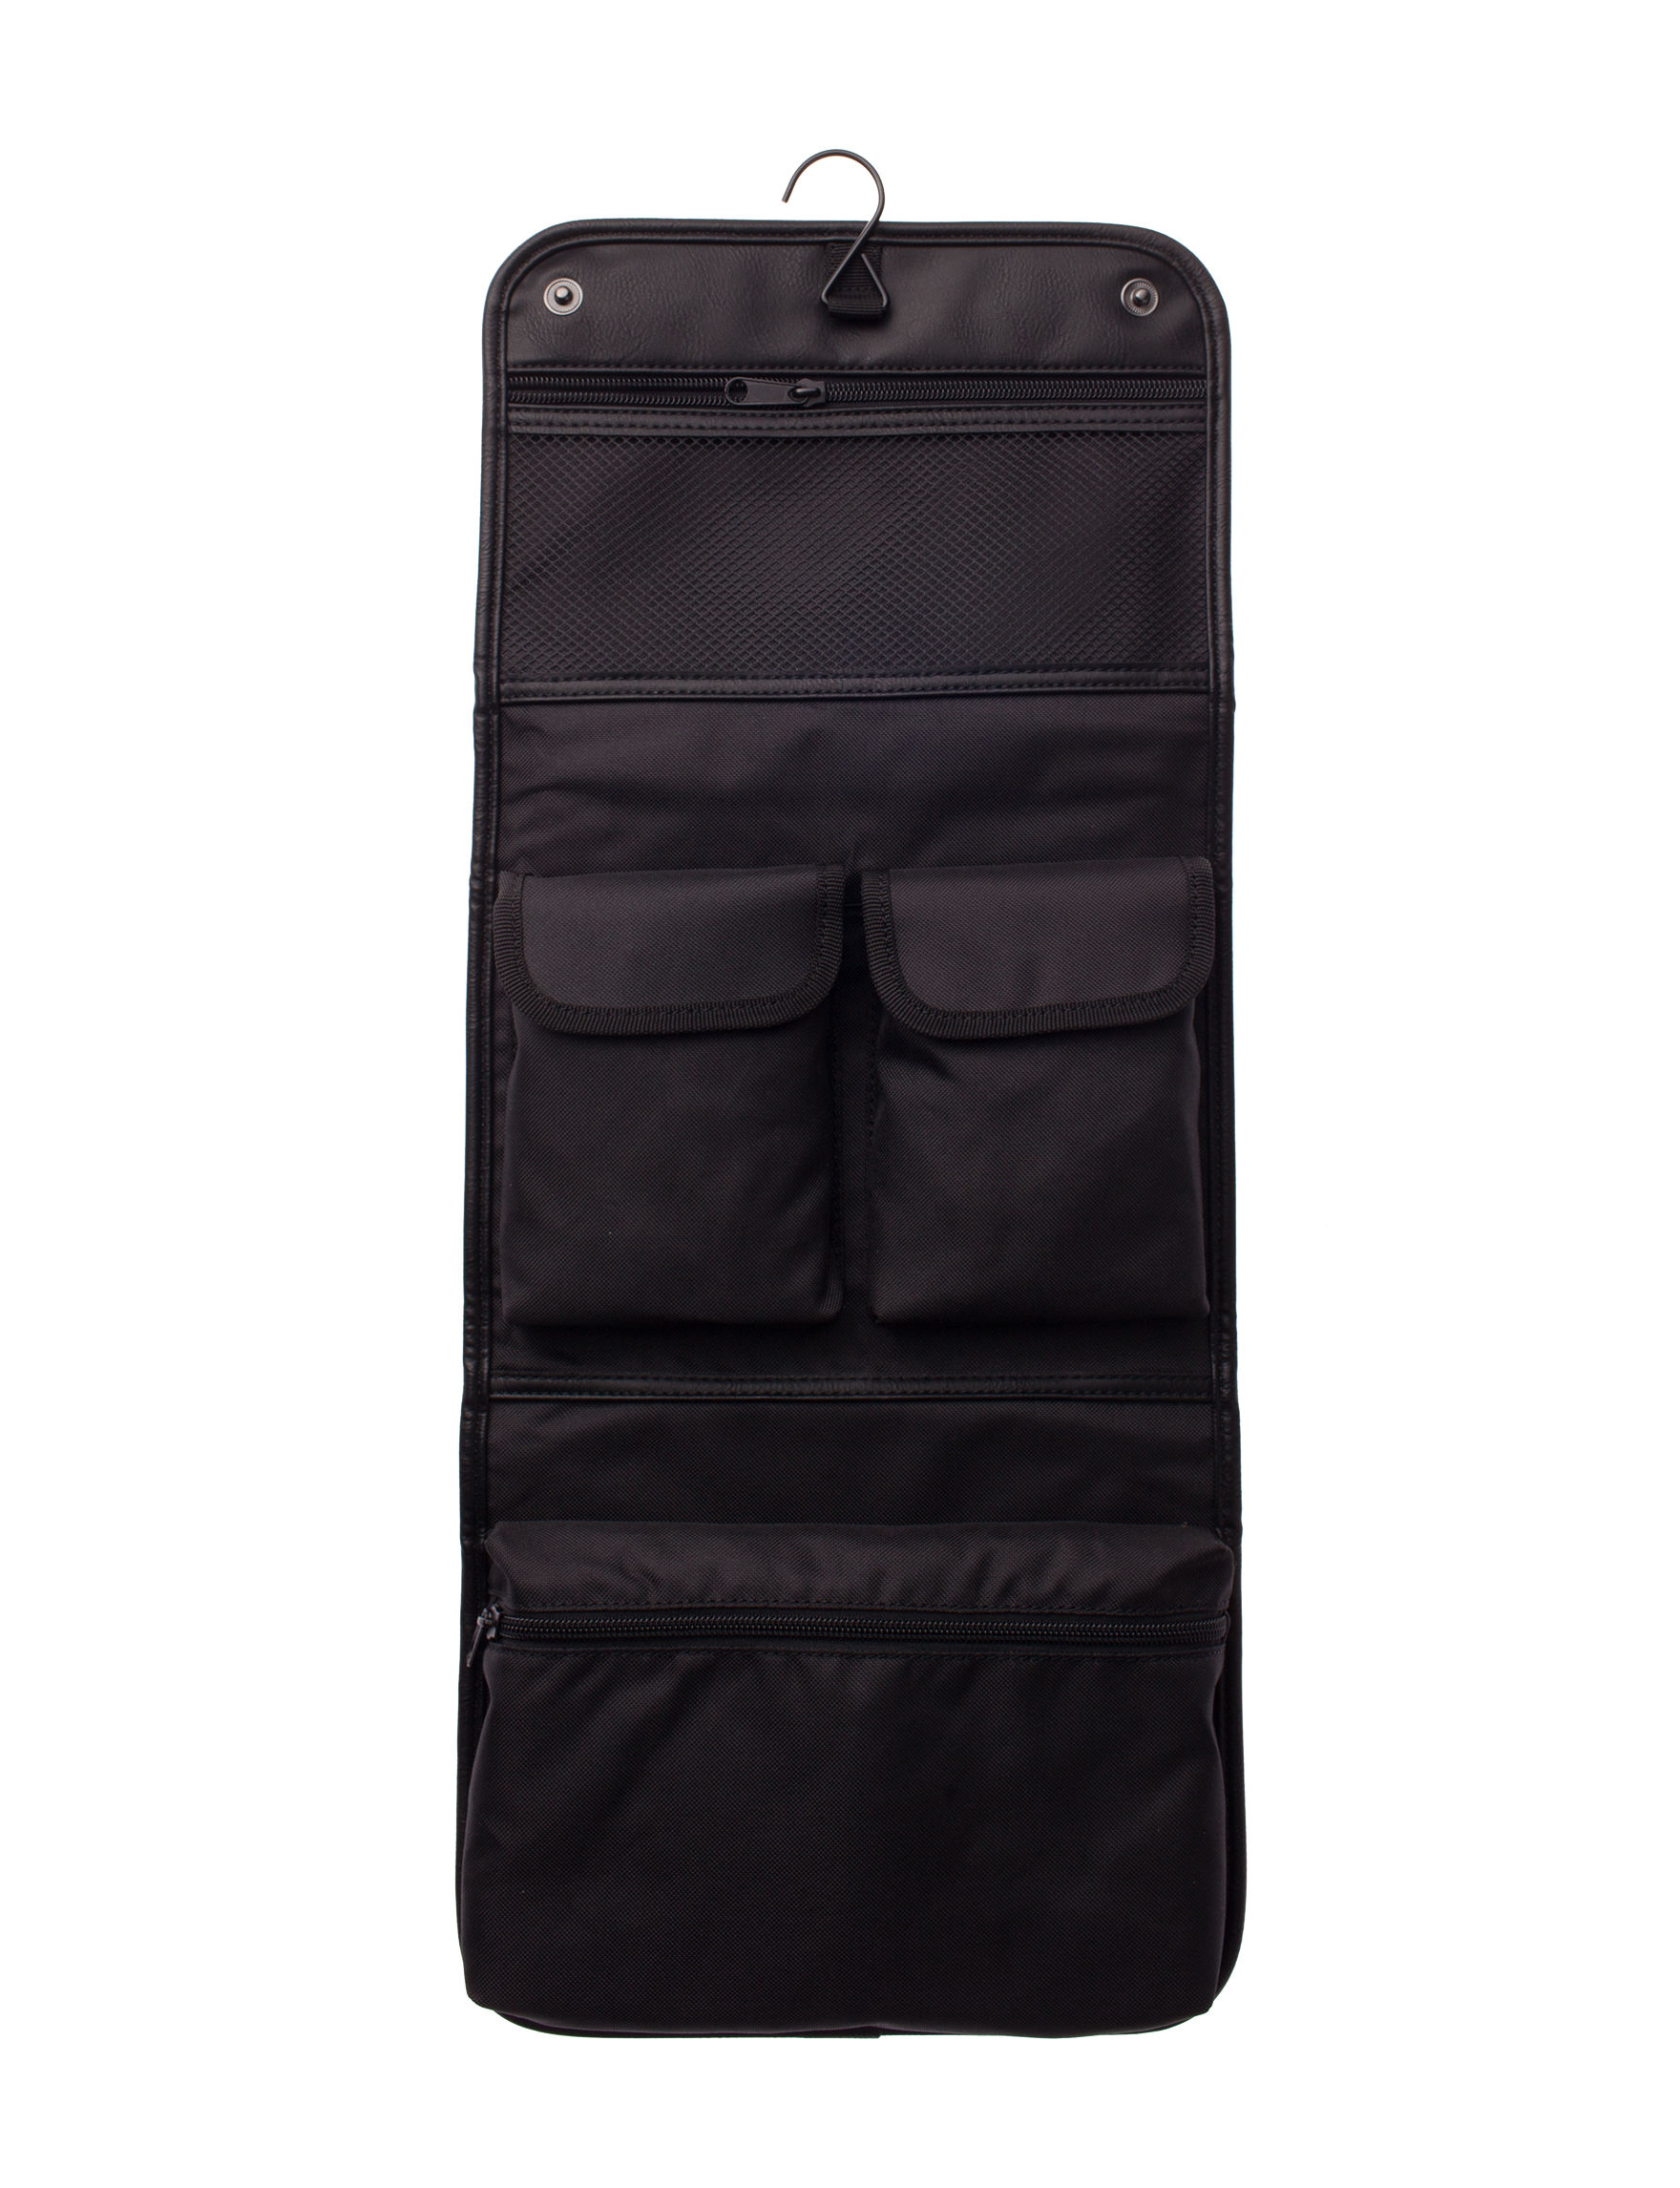 Dockers Black Travel Accessories